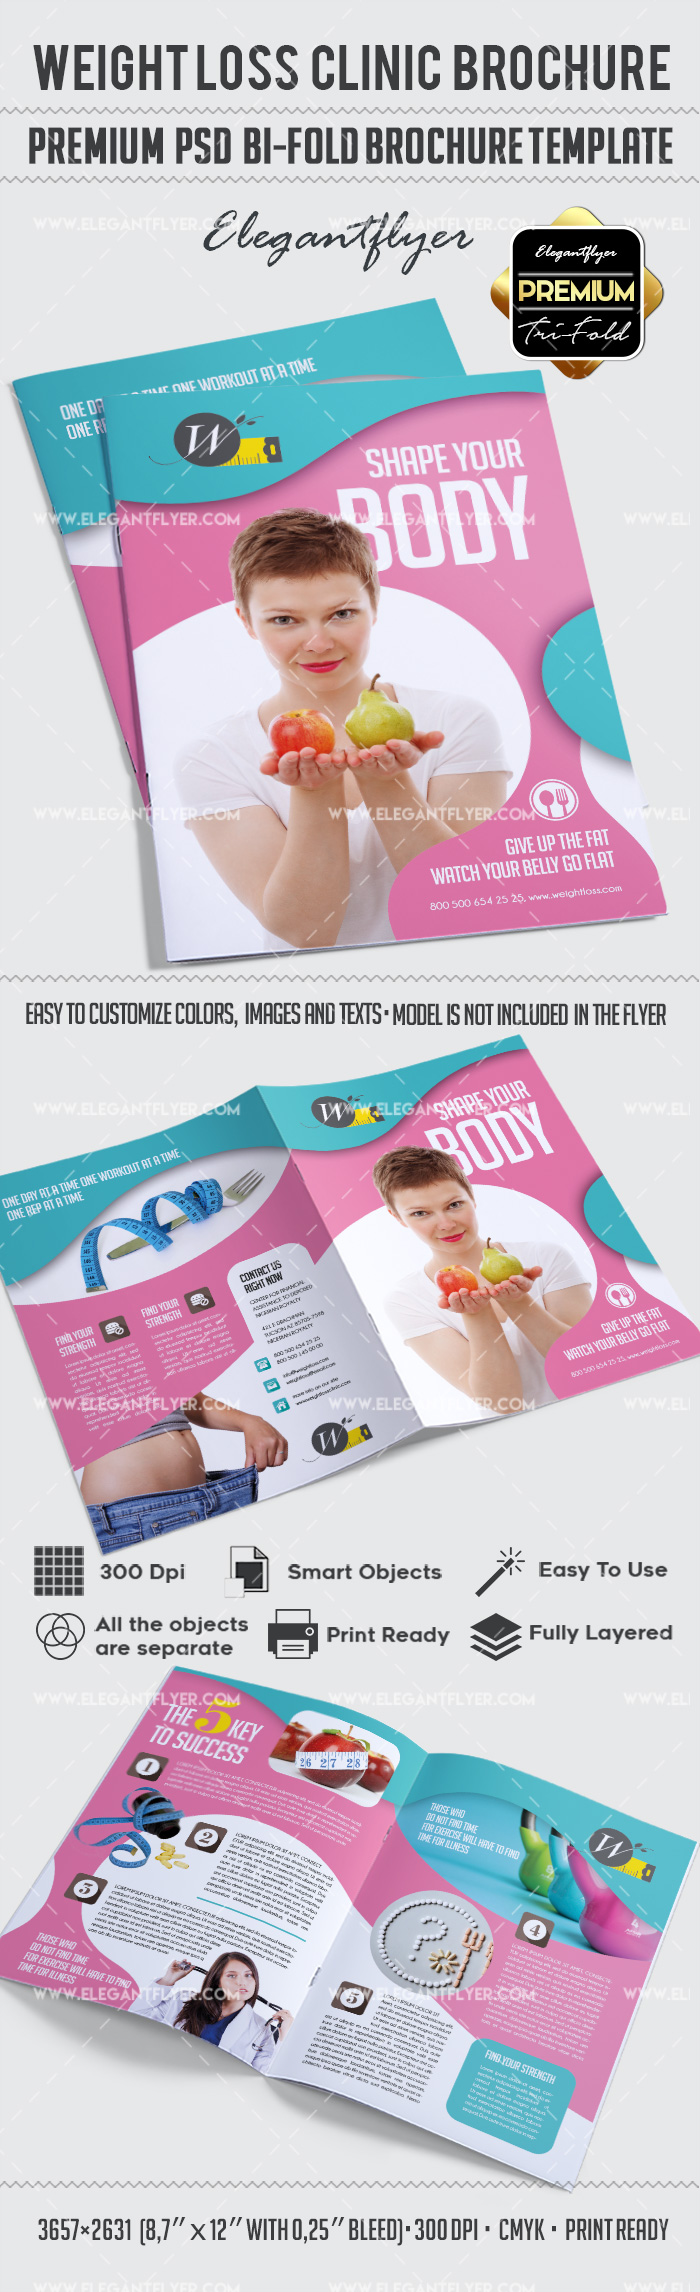 Weight Loss – Premium Bi-Fold PSD Brochure Template